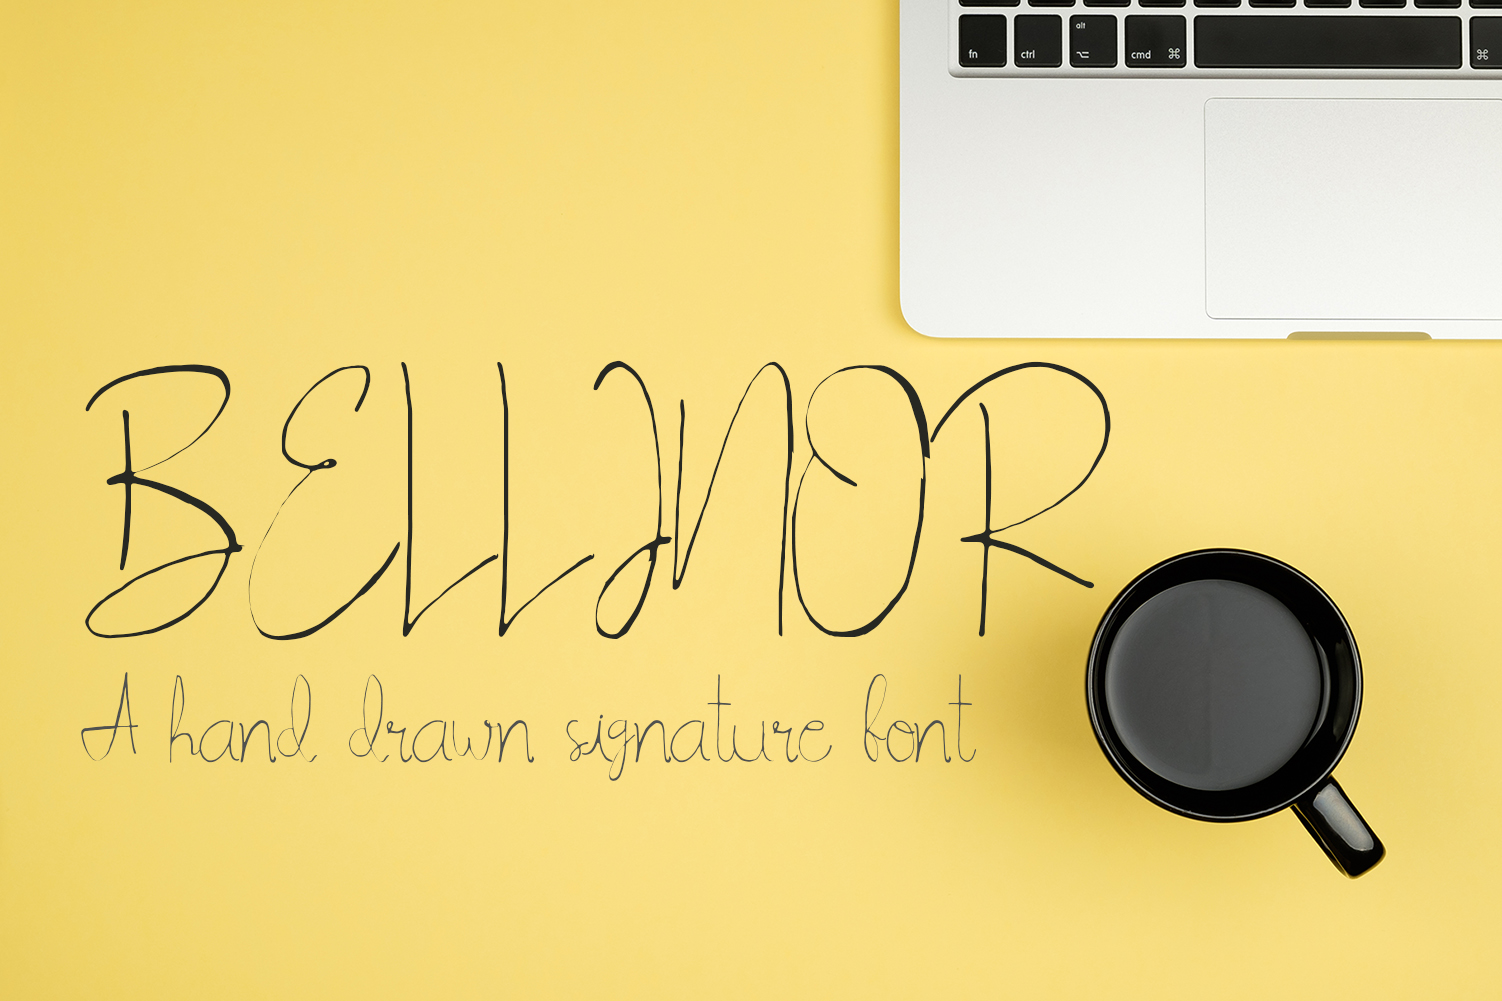 Bellinor A Hand Drawn Signature Font example image 1